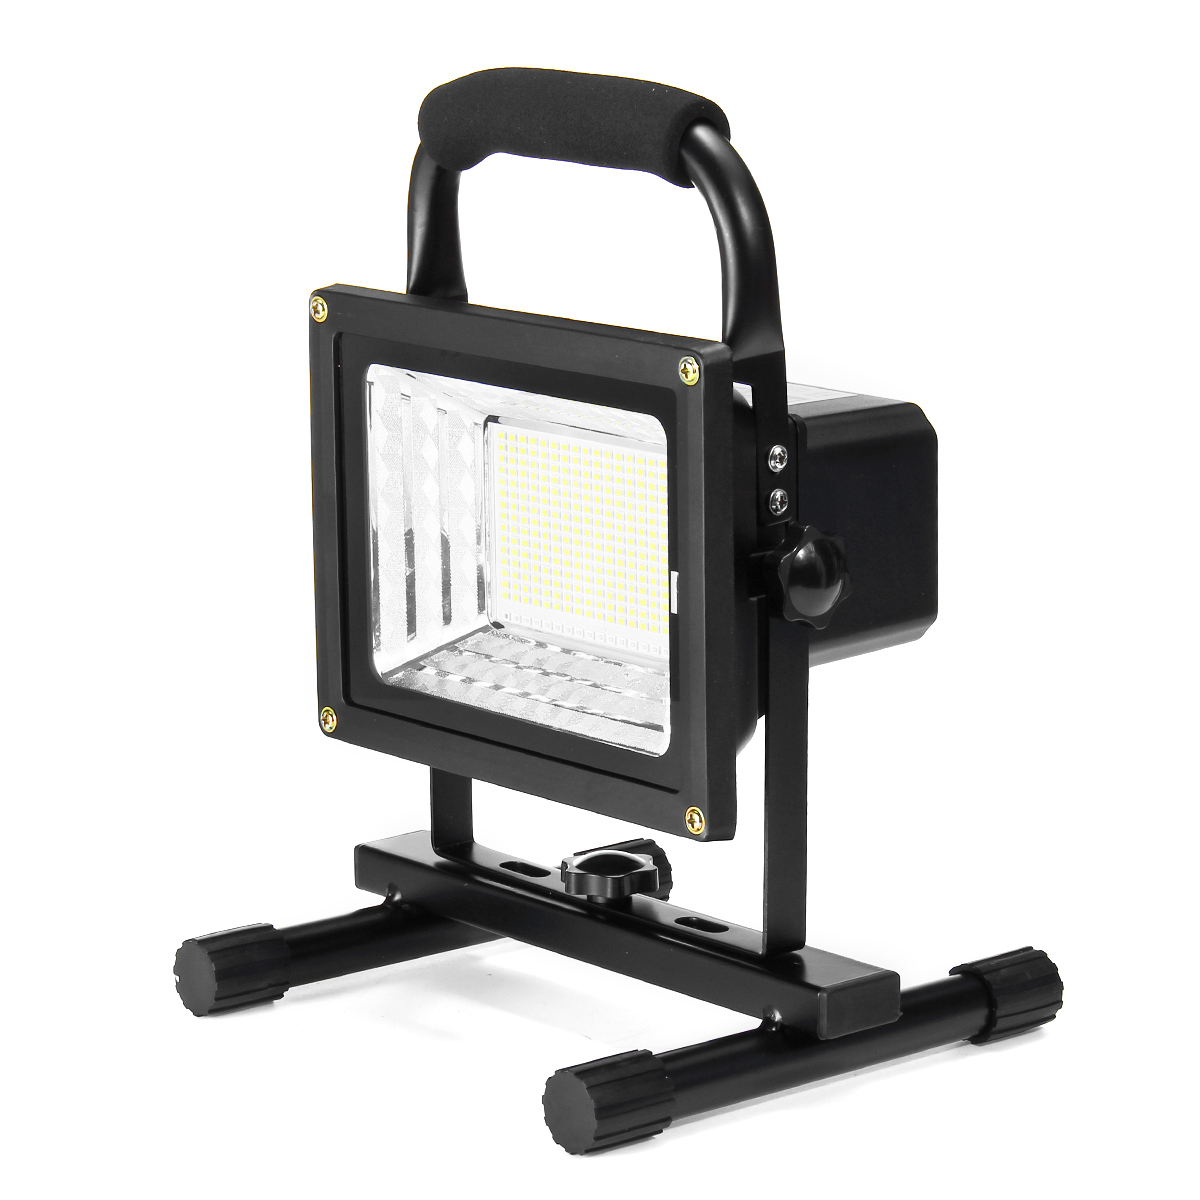 900W 256 LED Portable Rechargeable Flood Spot Light Lawn Work Camping Flash Lamp Outdoor